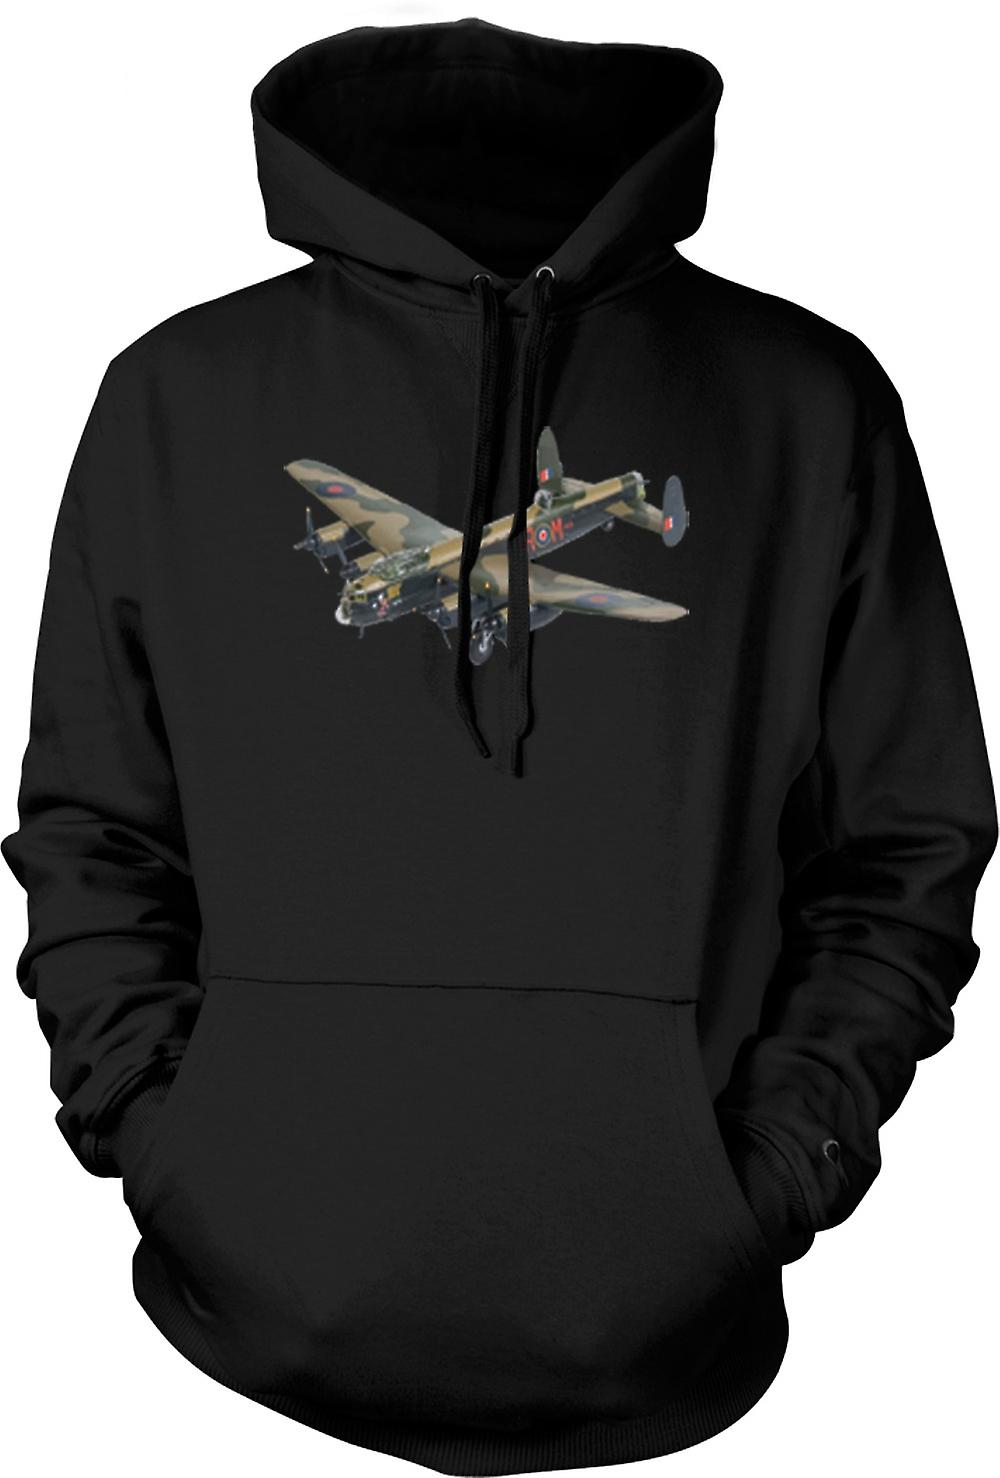 Mens Hoodie - Fighter Flugzeug Bomber Camouflage